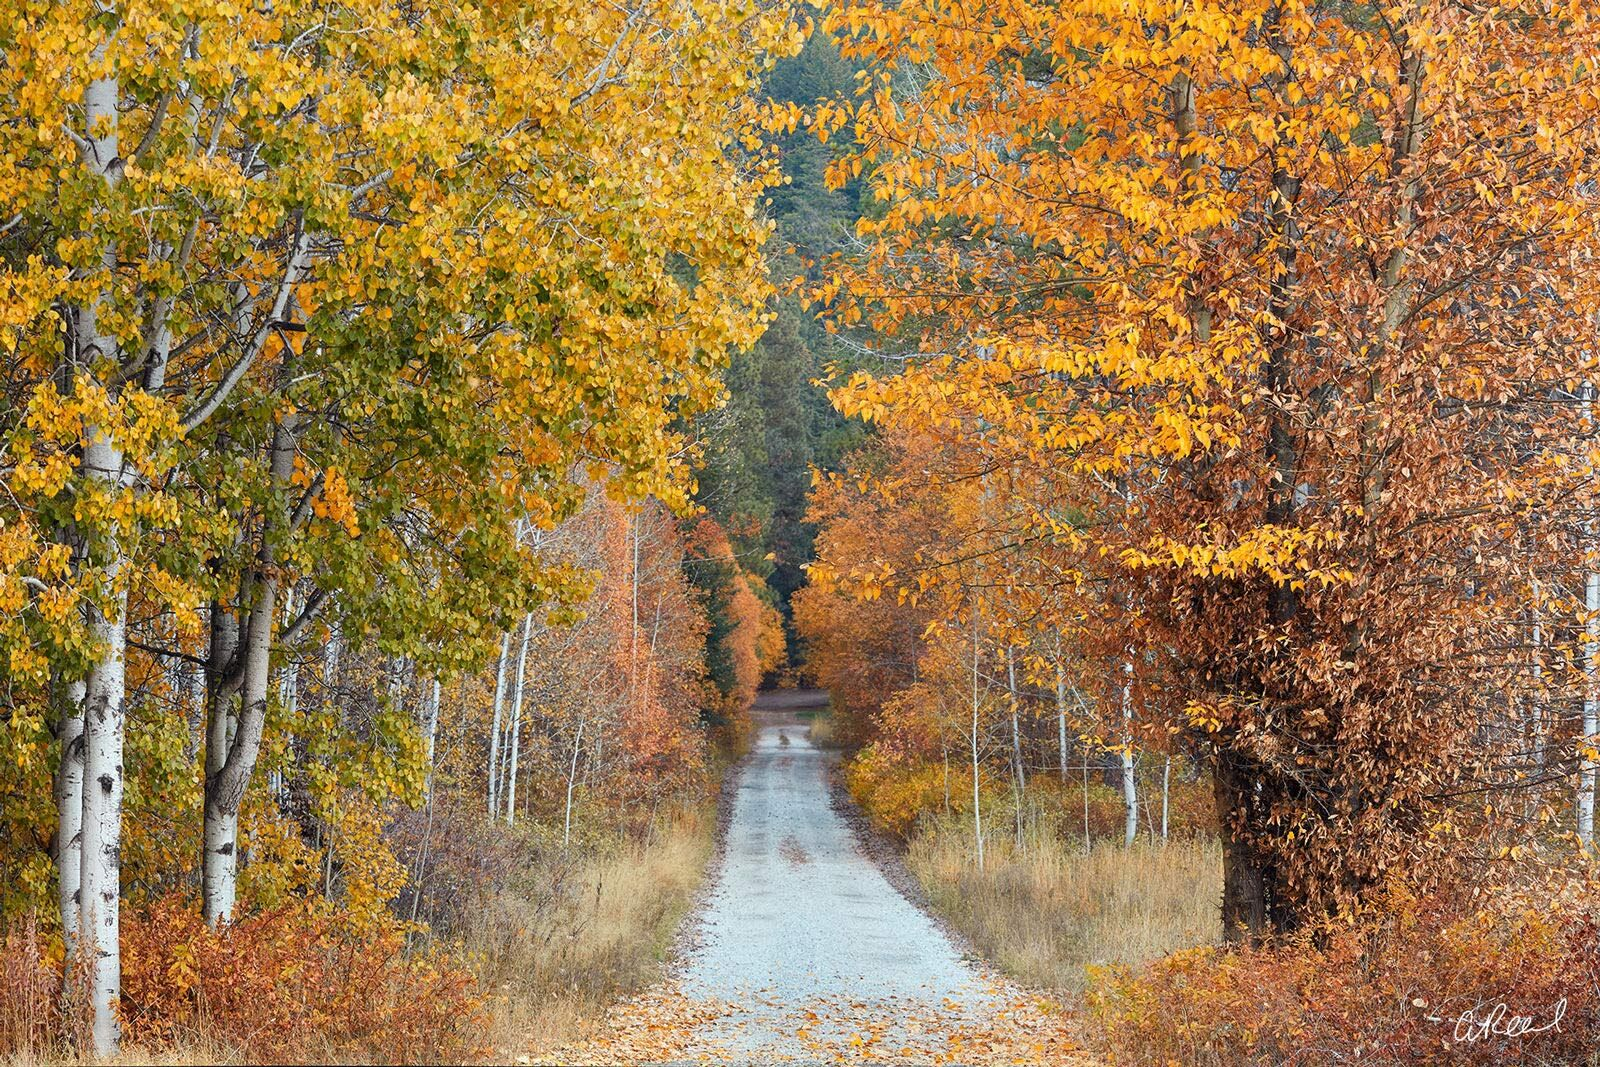 A photograph looking down a long country road with autumn trees and bushes on both sides.